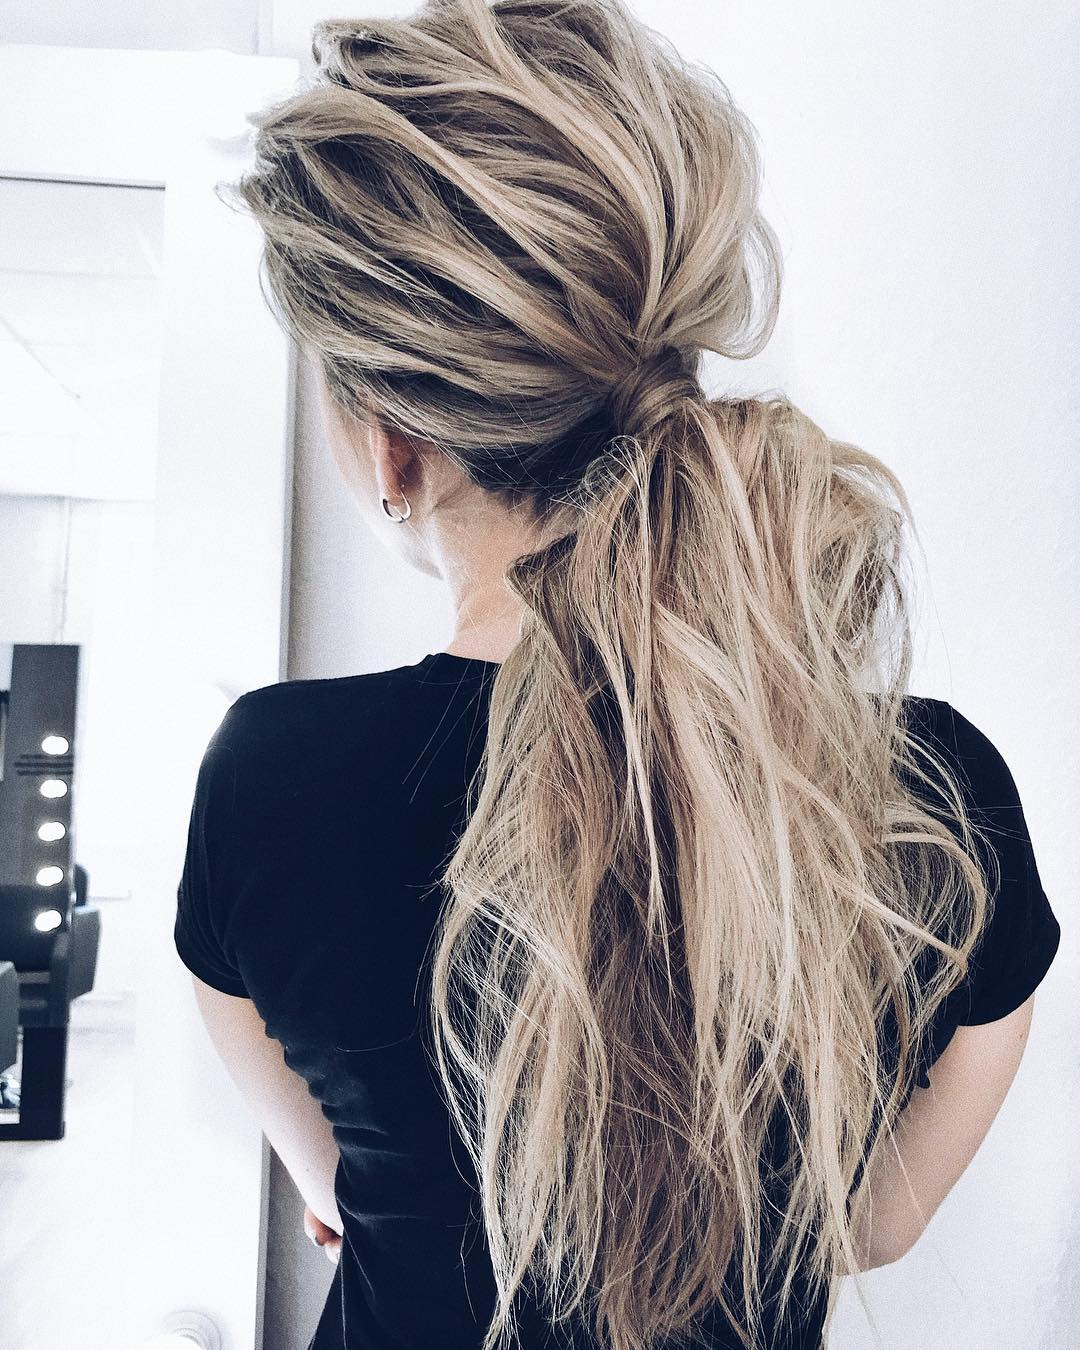 10 Creative Ponytail Hairstyles For Long Hair Summer